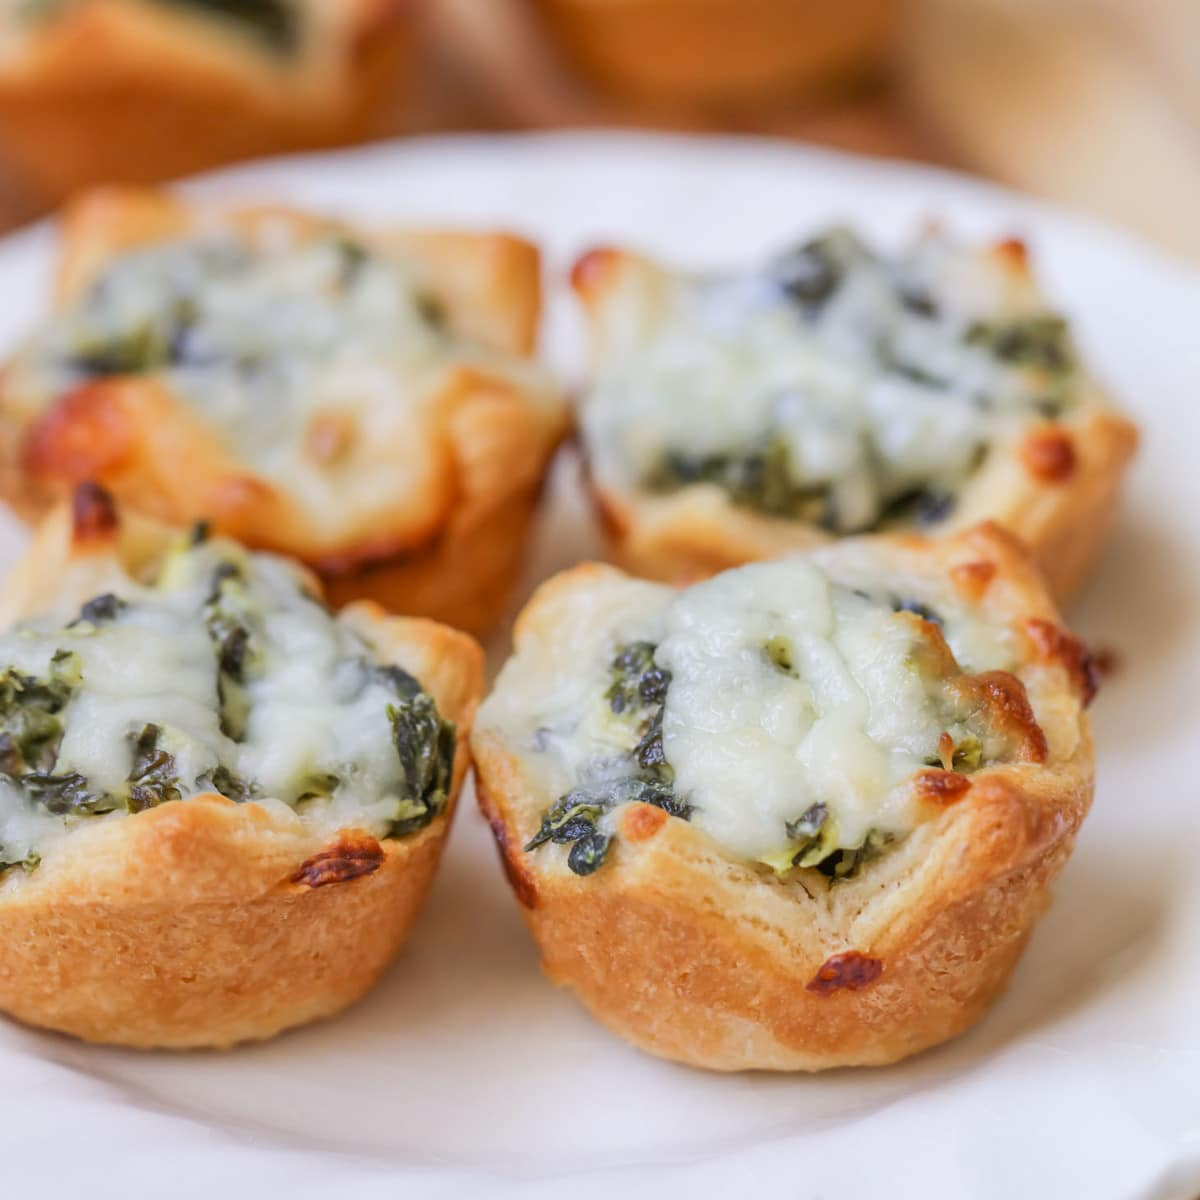 Healthy Christmas Appetizers Pinterest Spinach Dip Bites Recipe